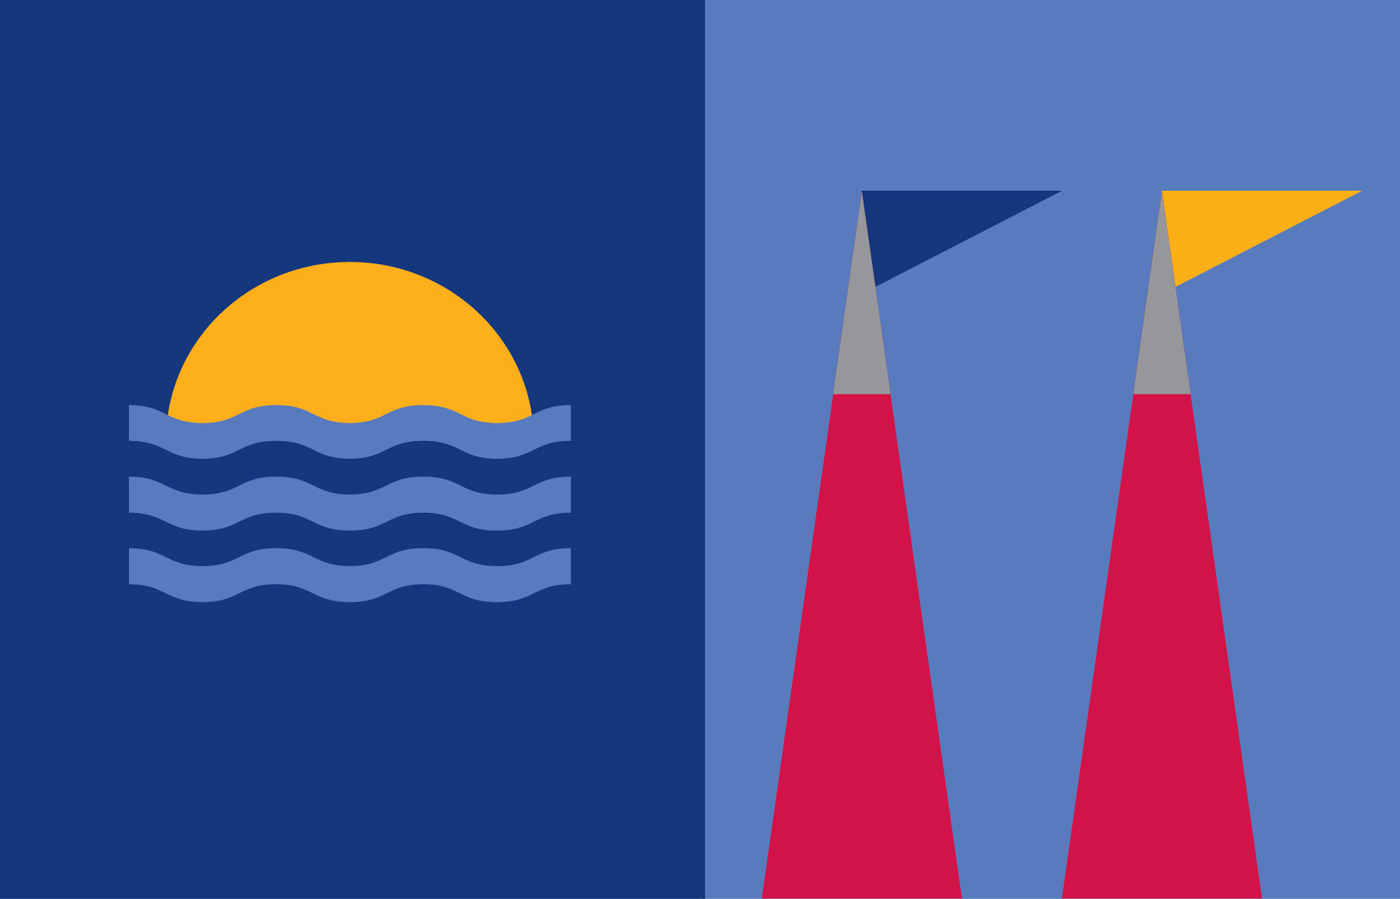 UL Undergrad Iconography representing the flagpoles and the sun on the horizon